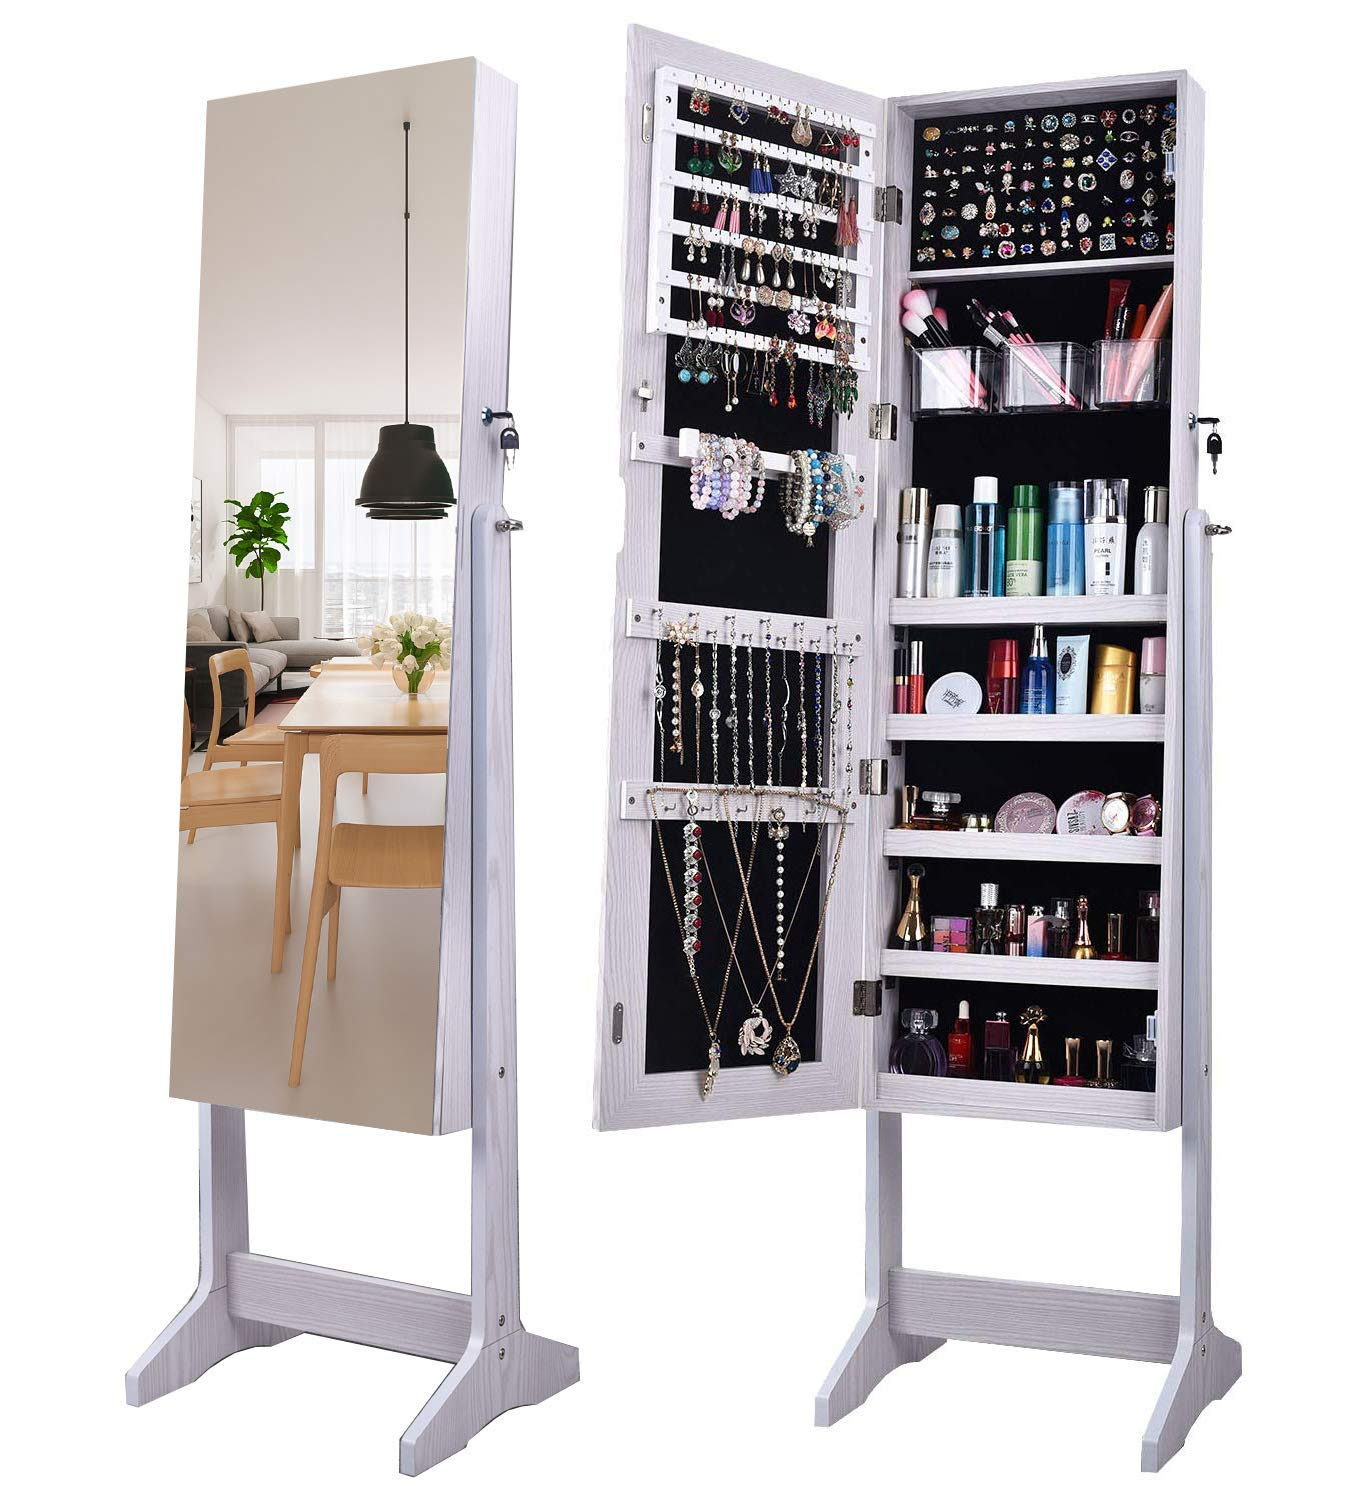 AOOU Jewelry Organizer Jewelry Armoire,Full Length Mirror Lockable Jewelry Cabinet, with Large Storage Capacity, 3 Angles Adjustable, White